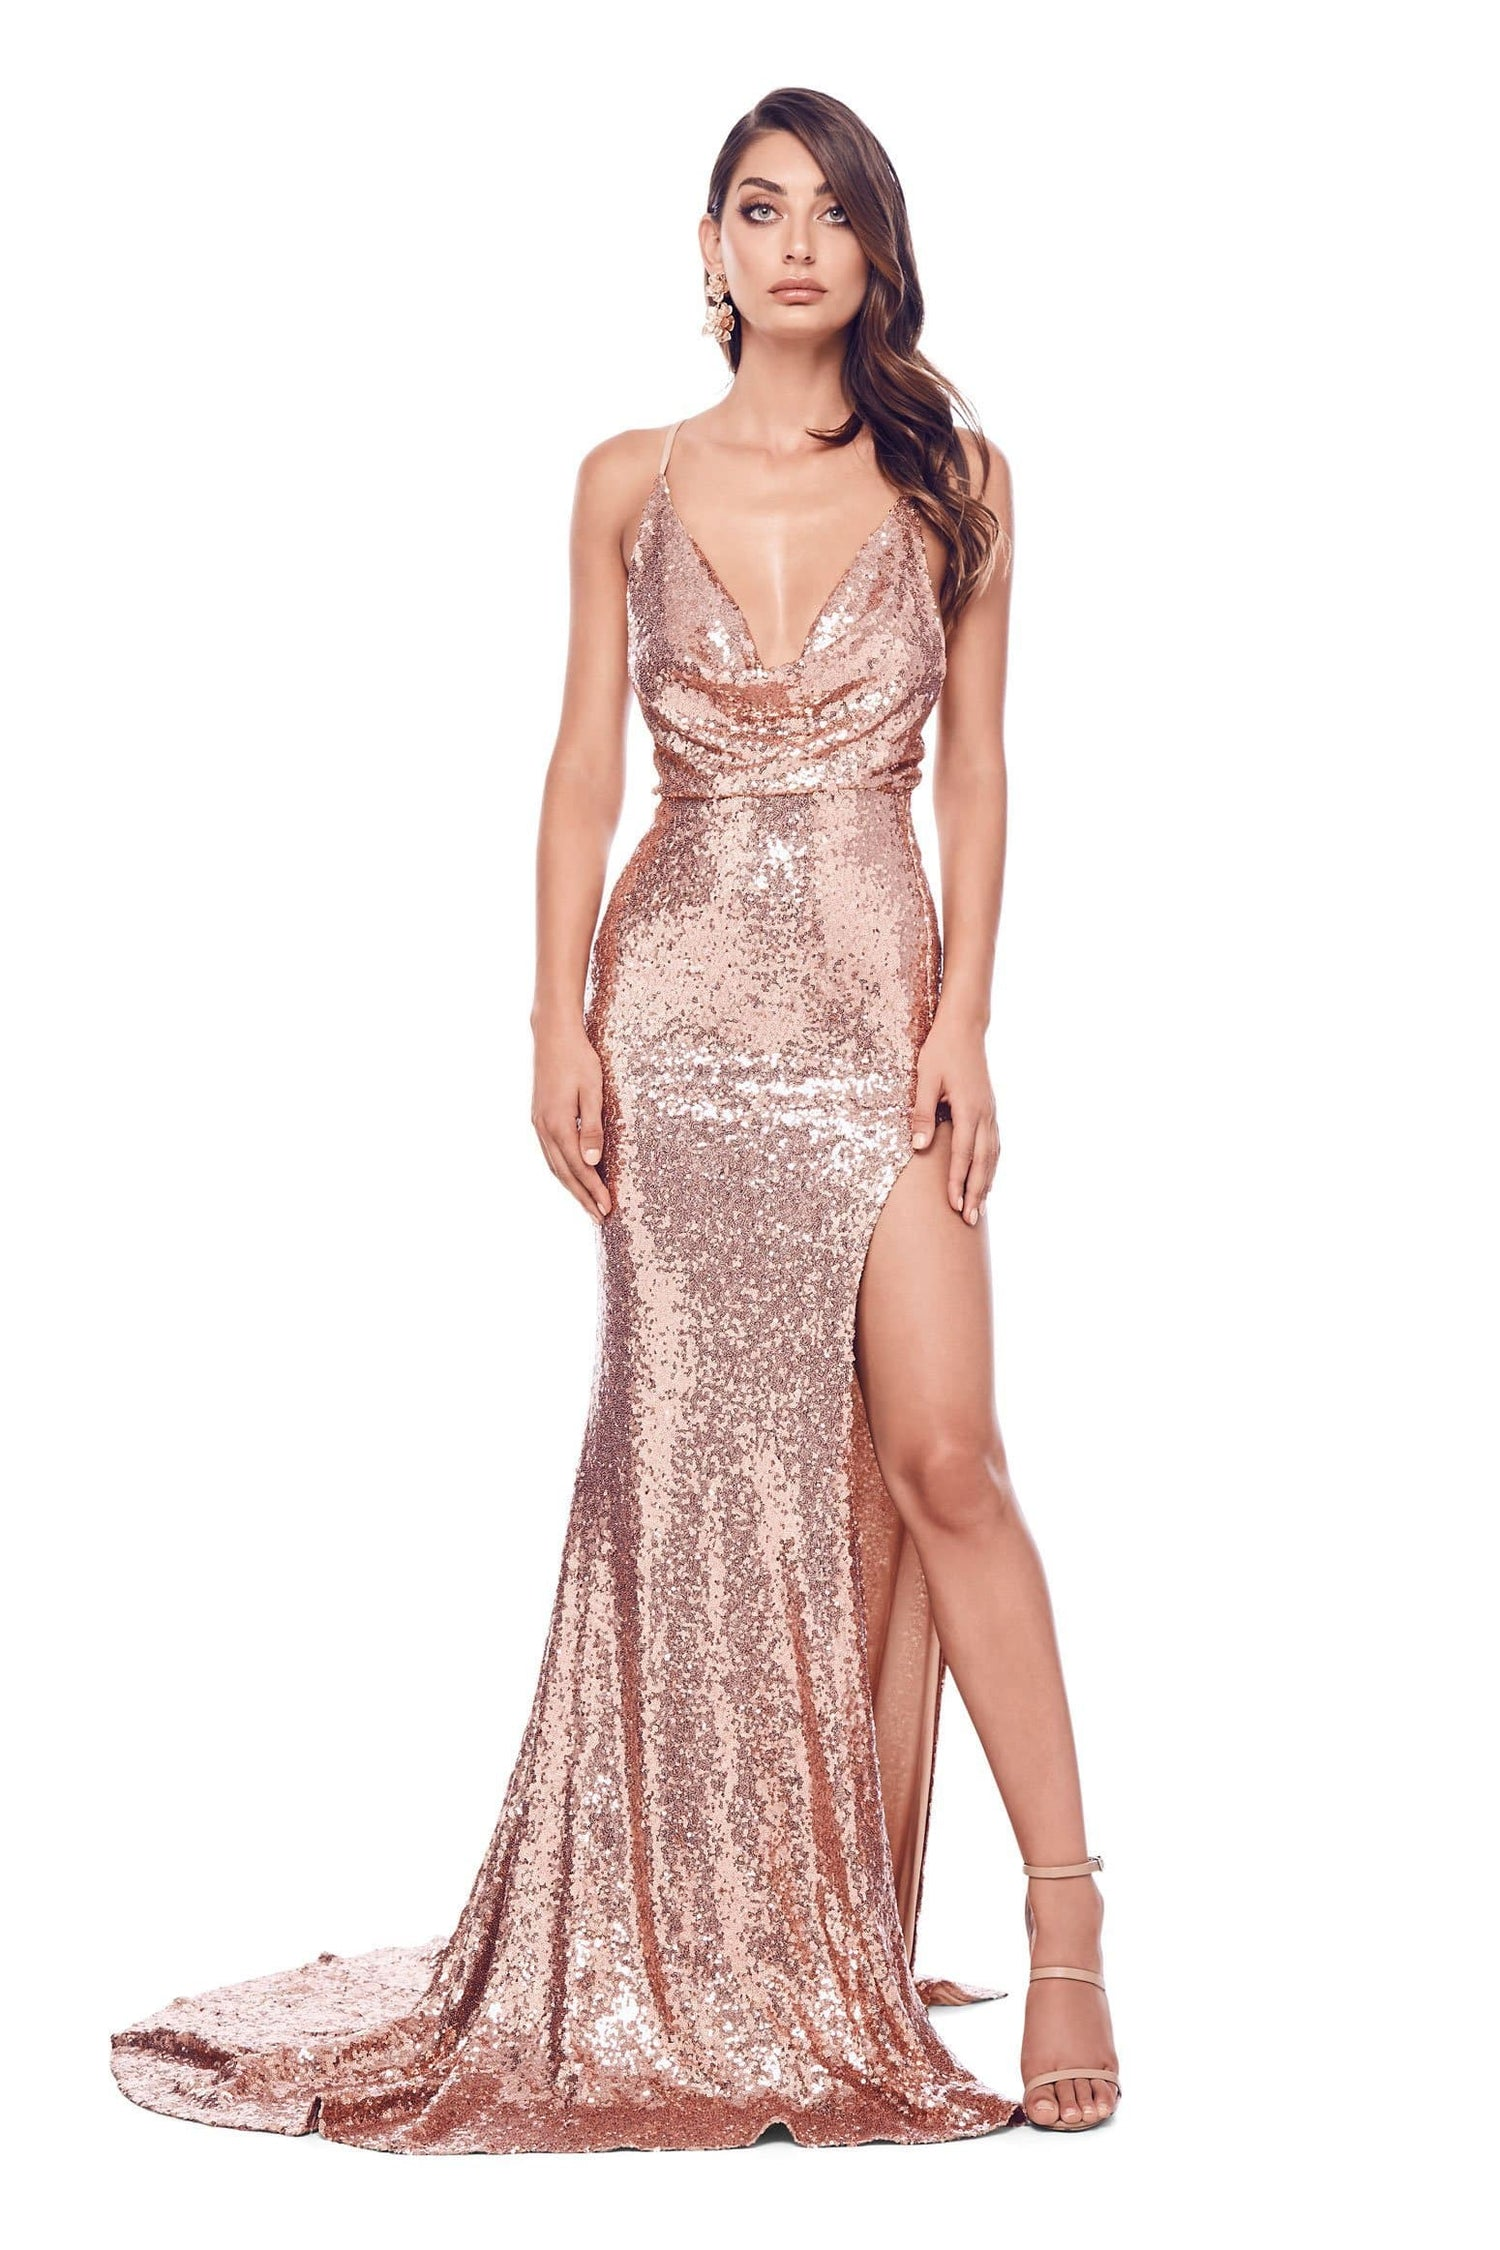 Andriana  - Rose Sequin Gown with Cowl Neck, Low Back & Side Slit